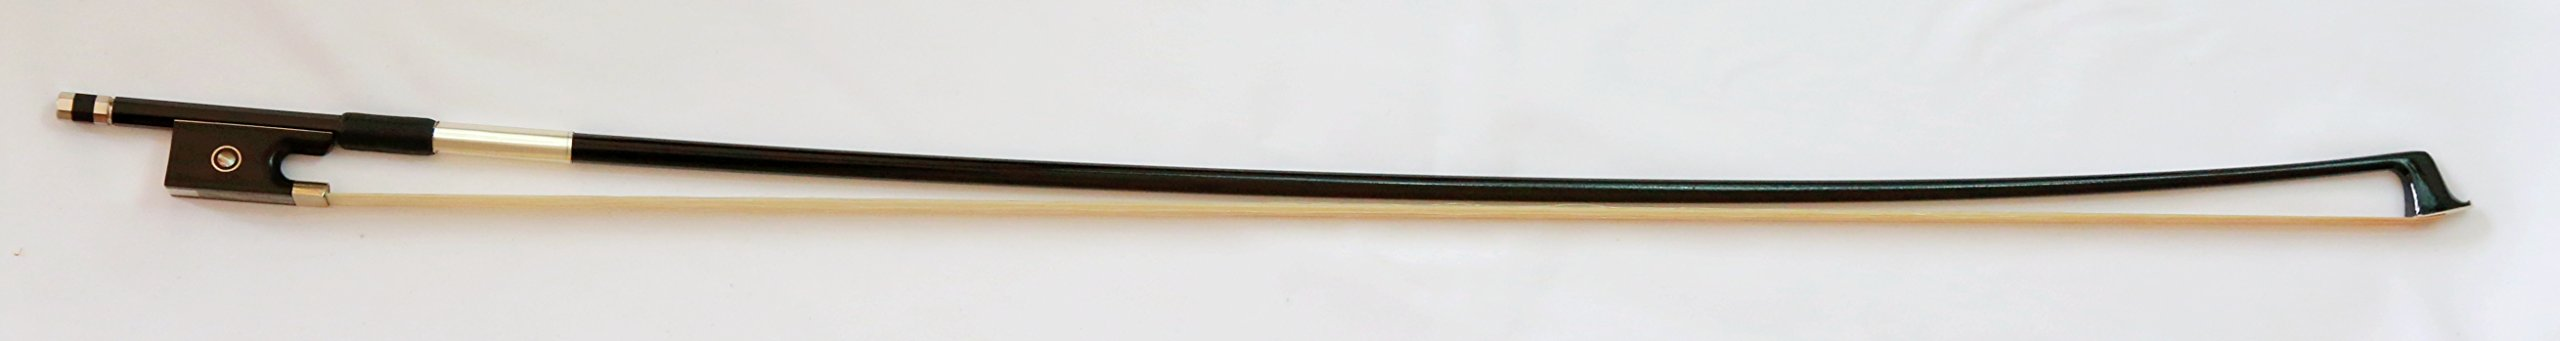 Vio Music Top Carbon Fiber 4/4 Violin Bow, Ebony Frog